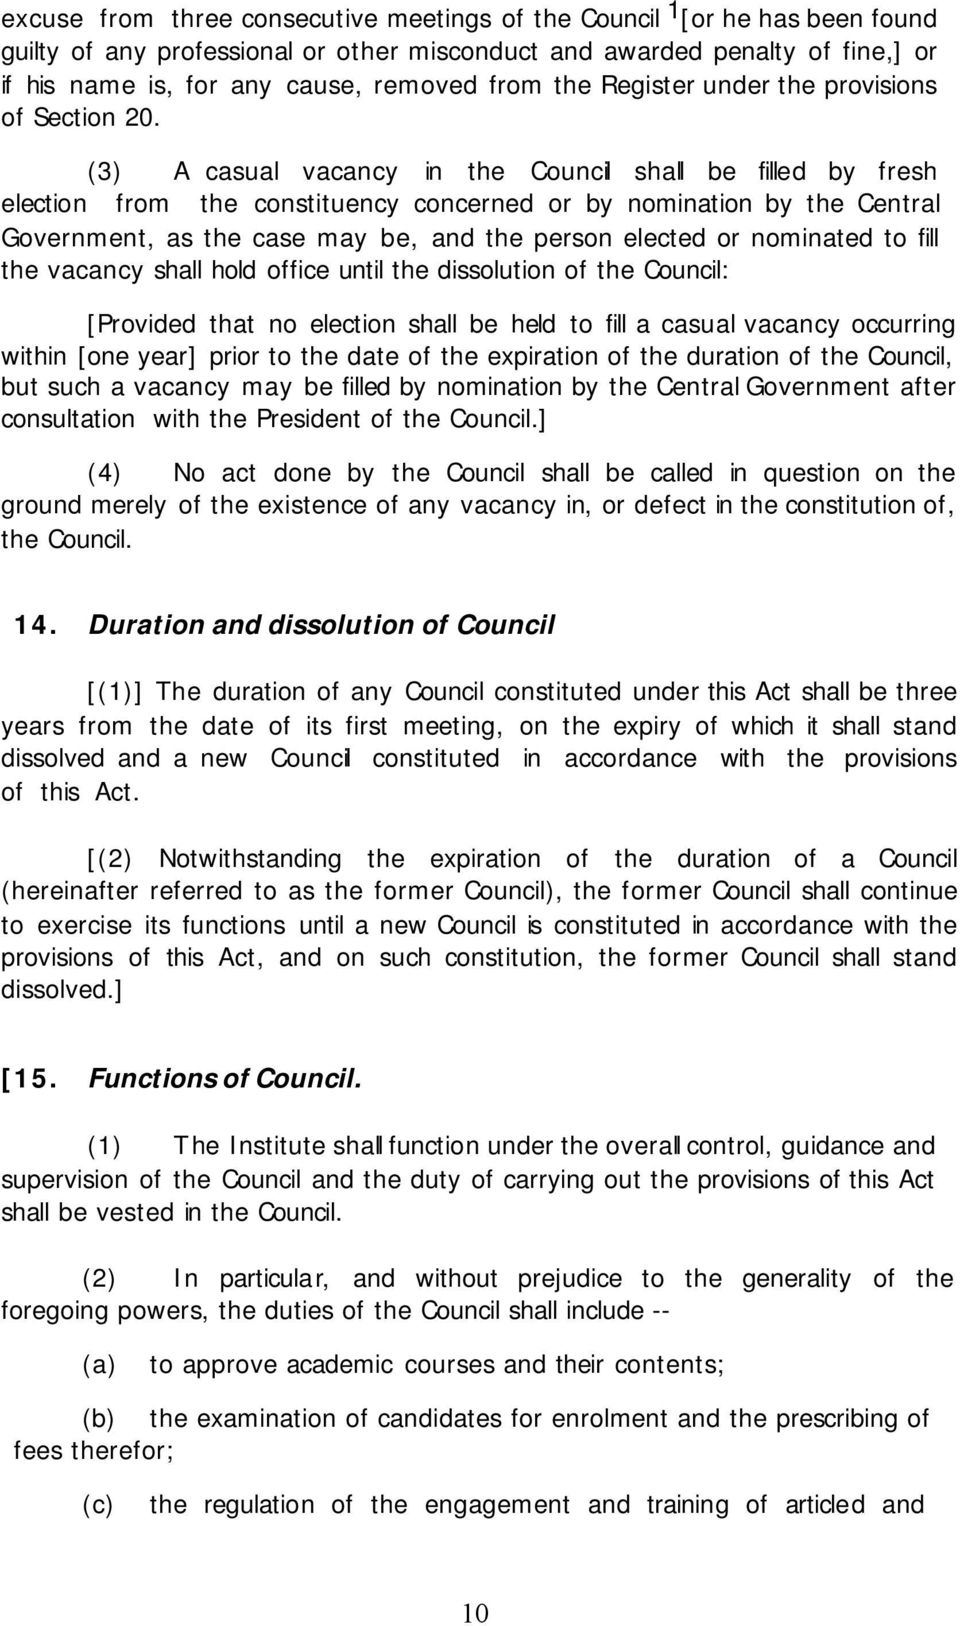 (3) A casual vacancy in the Council shall be filled by fresh election from the constituency concerned or by nomination by the Central Government, as the case may be, and the person elected or